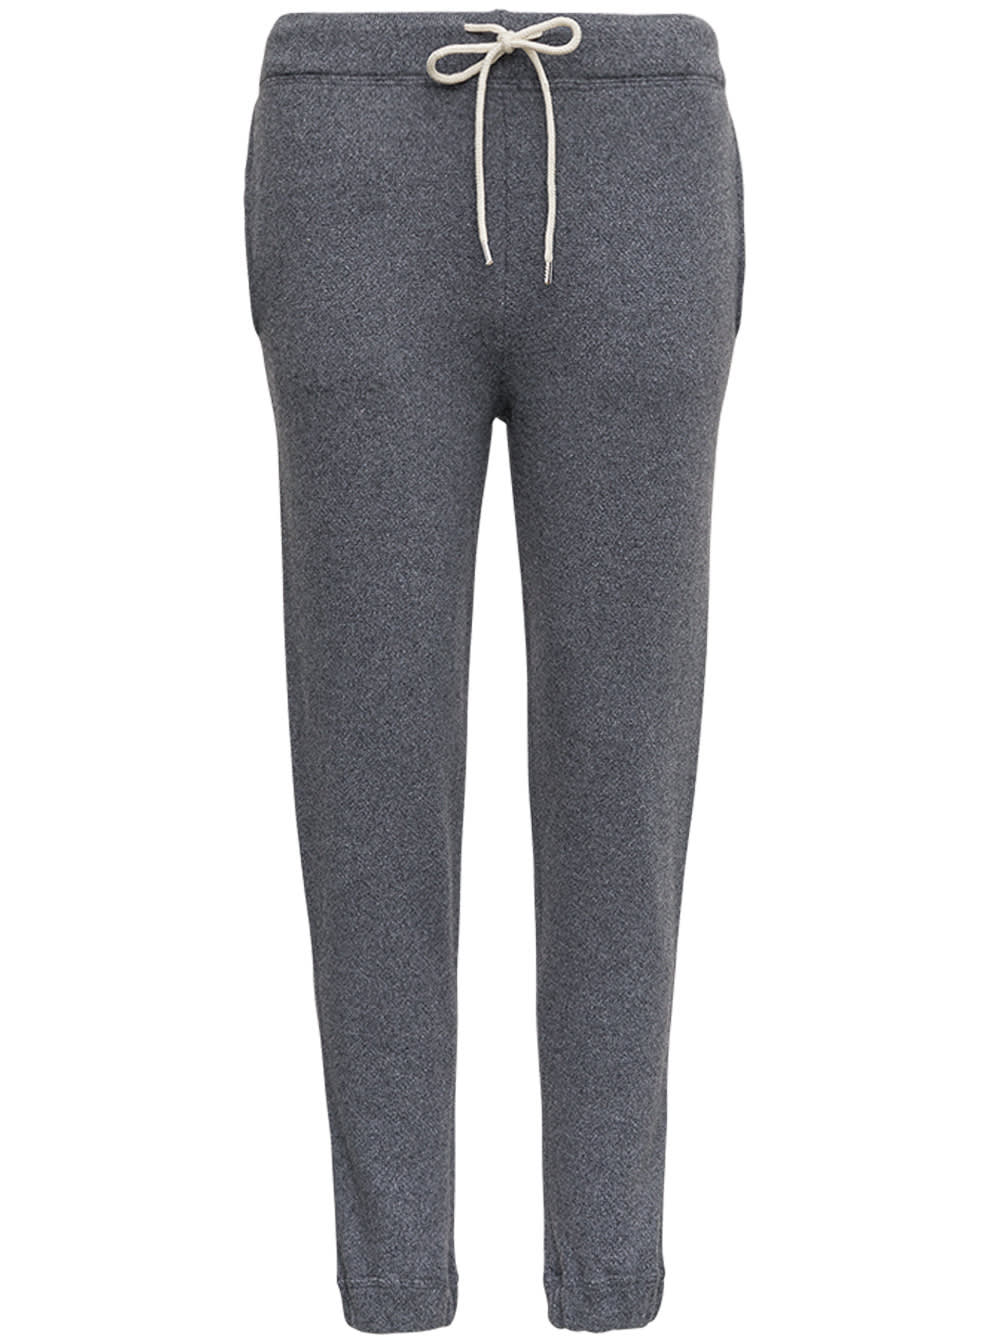 Grey Cashmere Joggers With Drawstring